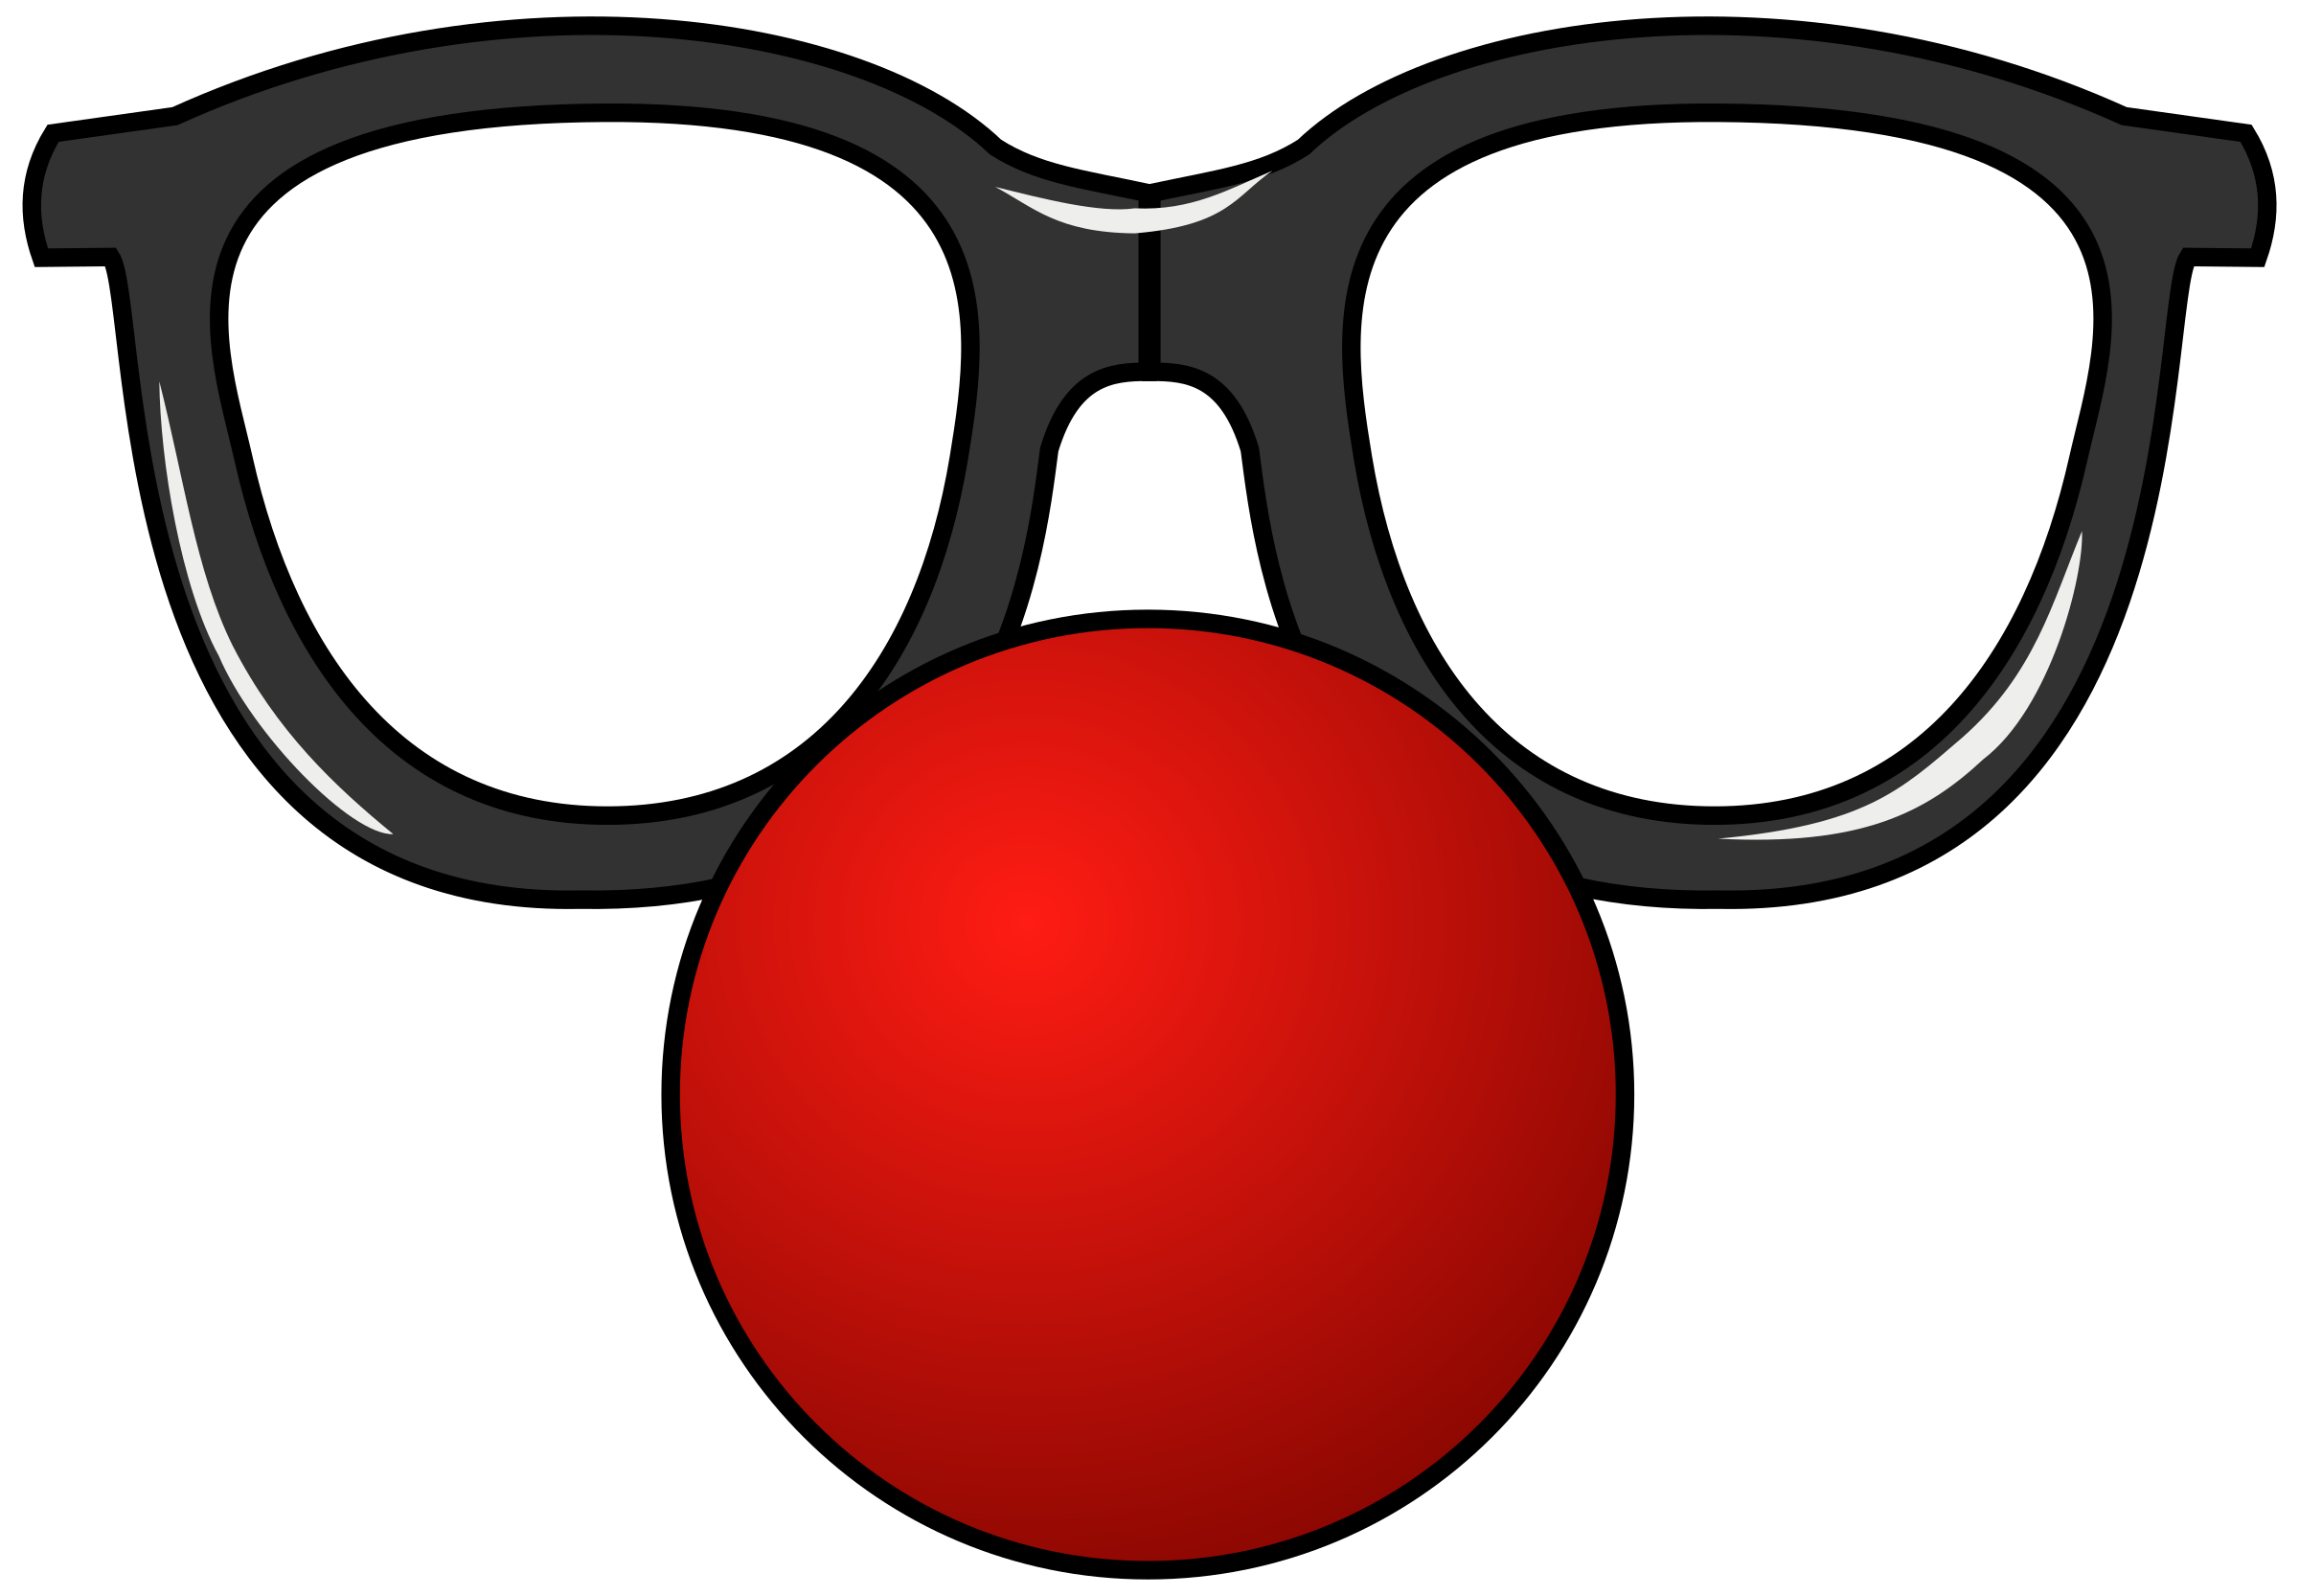 Glasses clipart clown. Funny icons png free